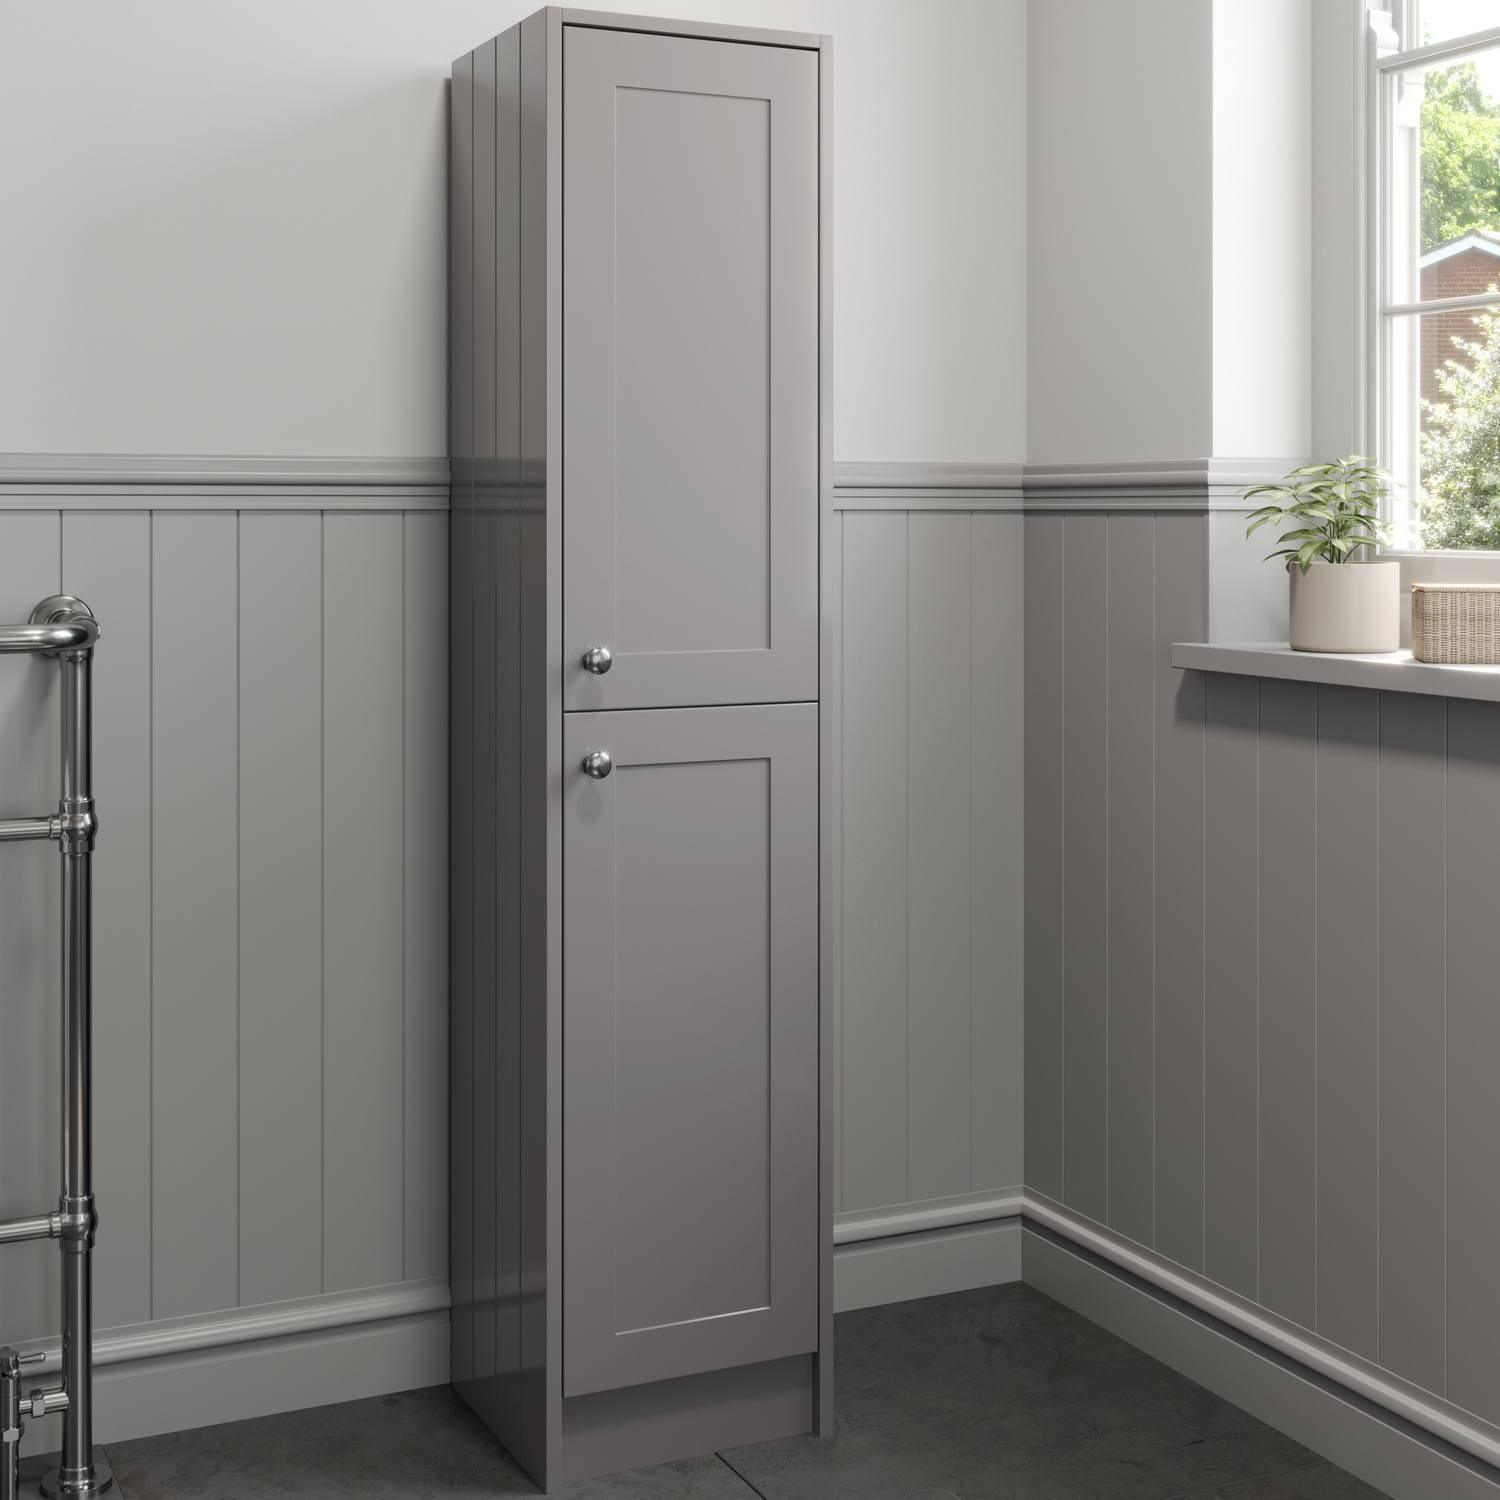 Details About 1600mm Tall Bathroom Storage Cabinet Cupboard Floorstanding Grey Traditional with regard to sizing 1500 X 1500